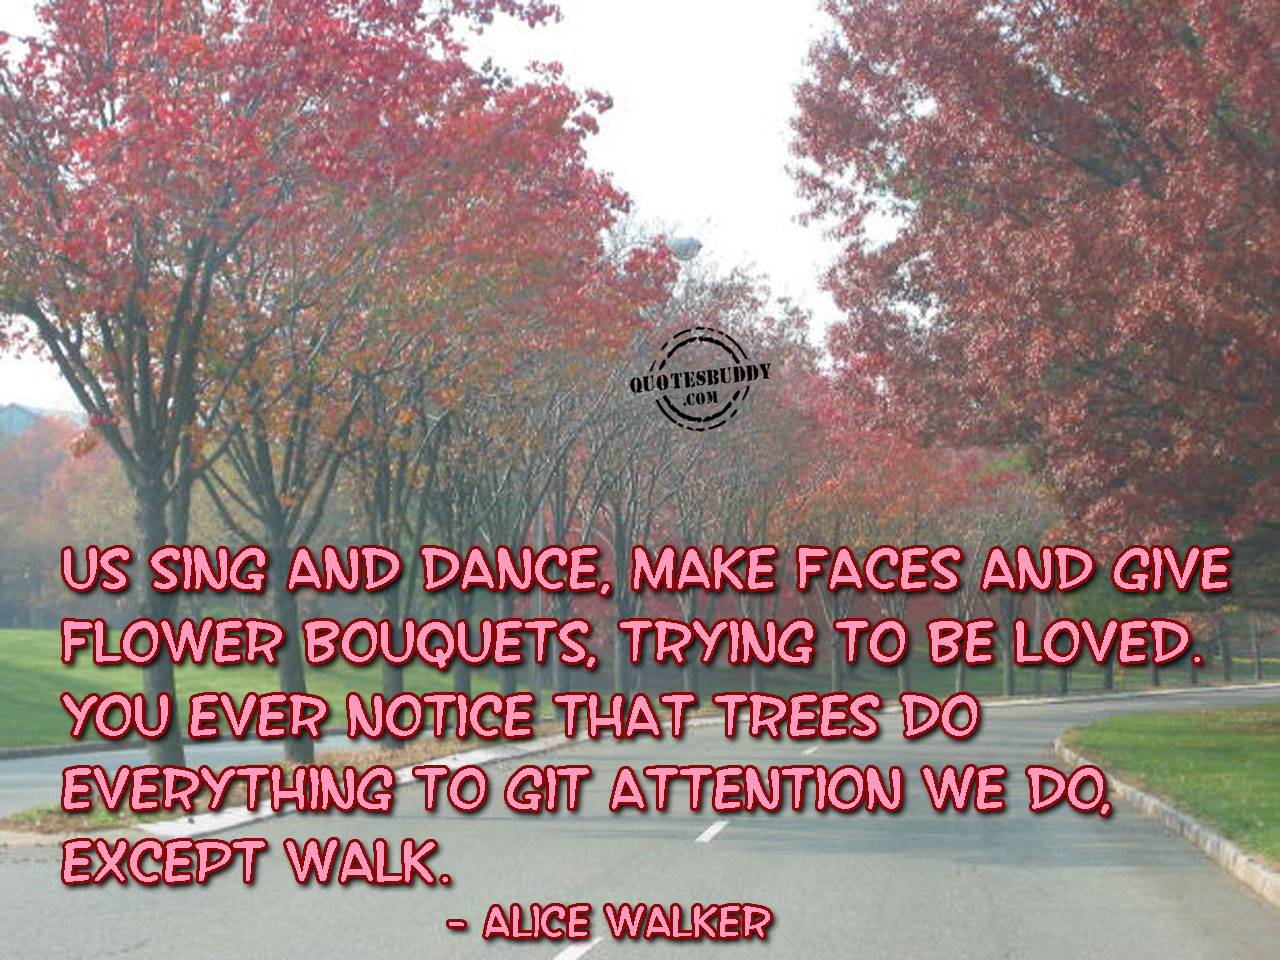 you-ever-notice-that-trees-do-everything-to-get-attention-we-do-accept-walk-good-day-quote